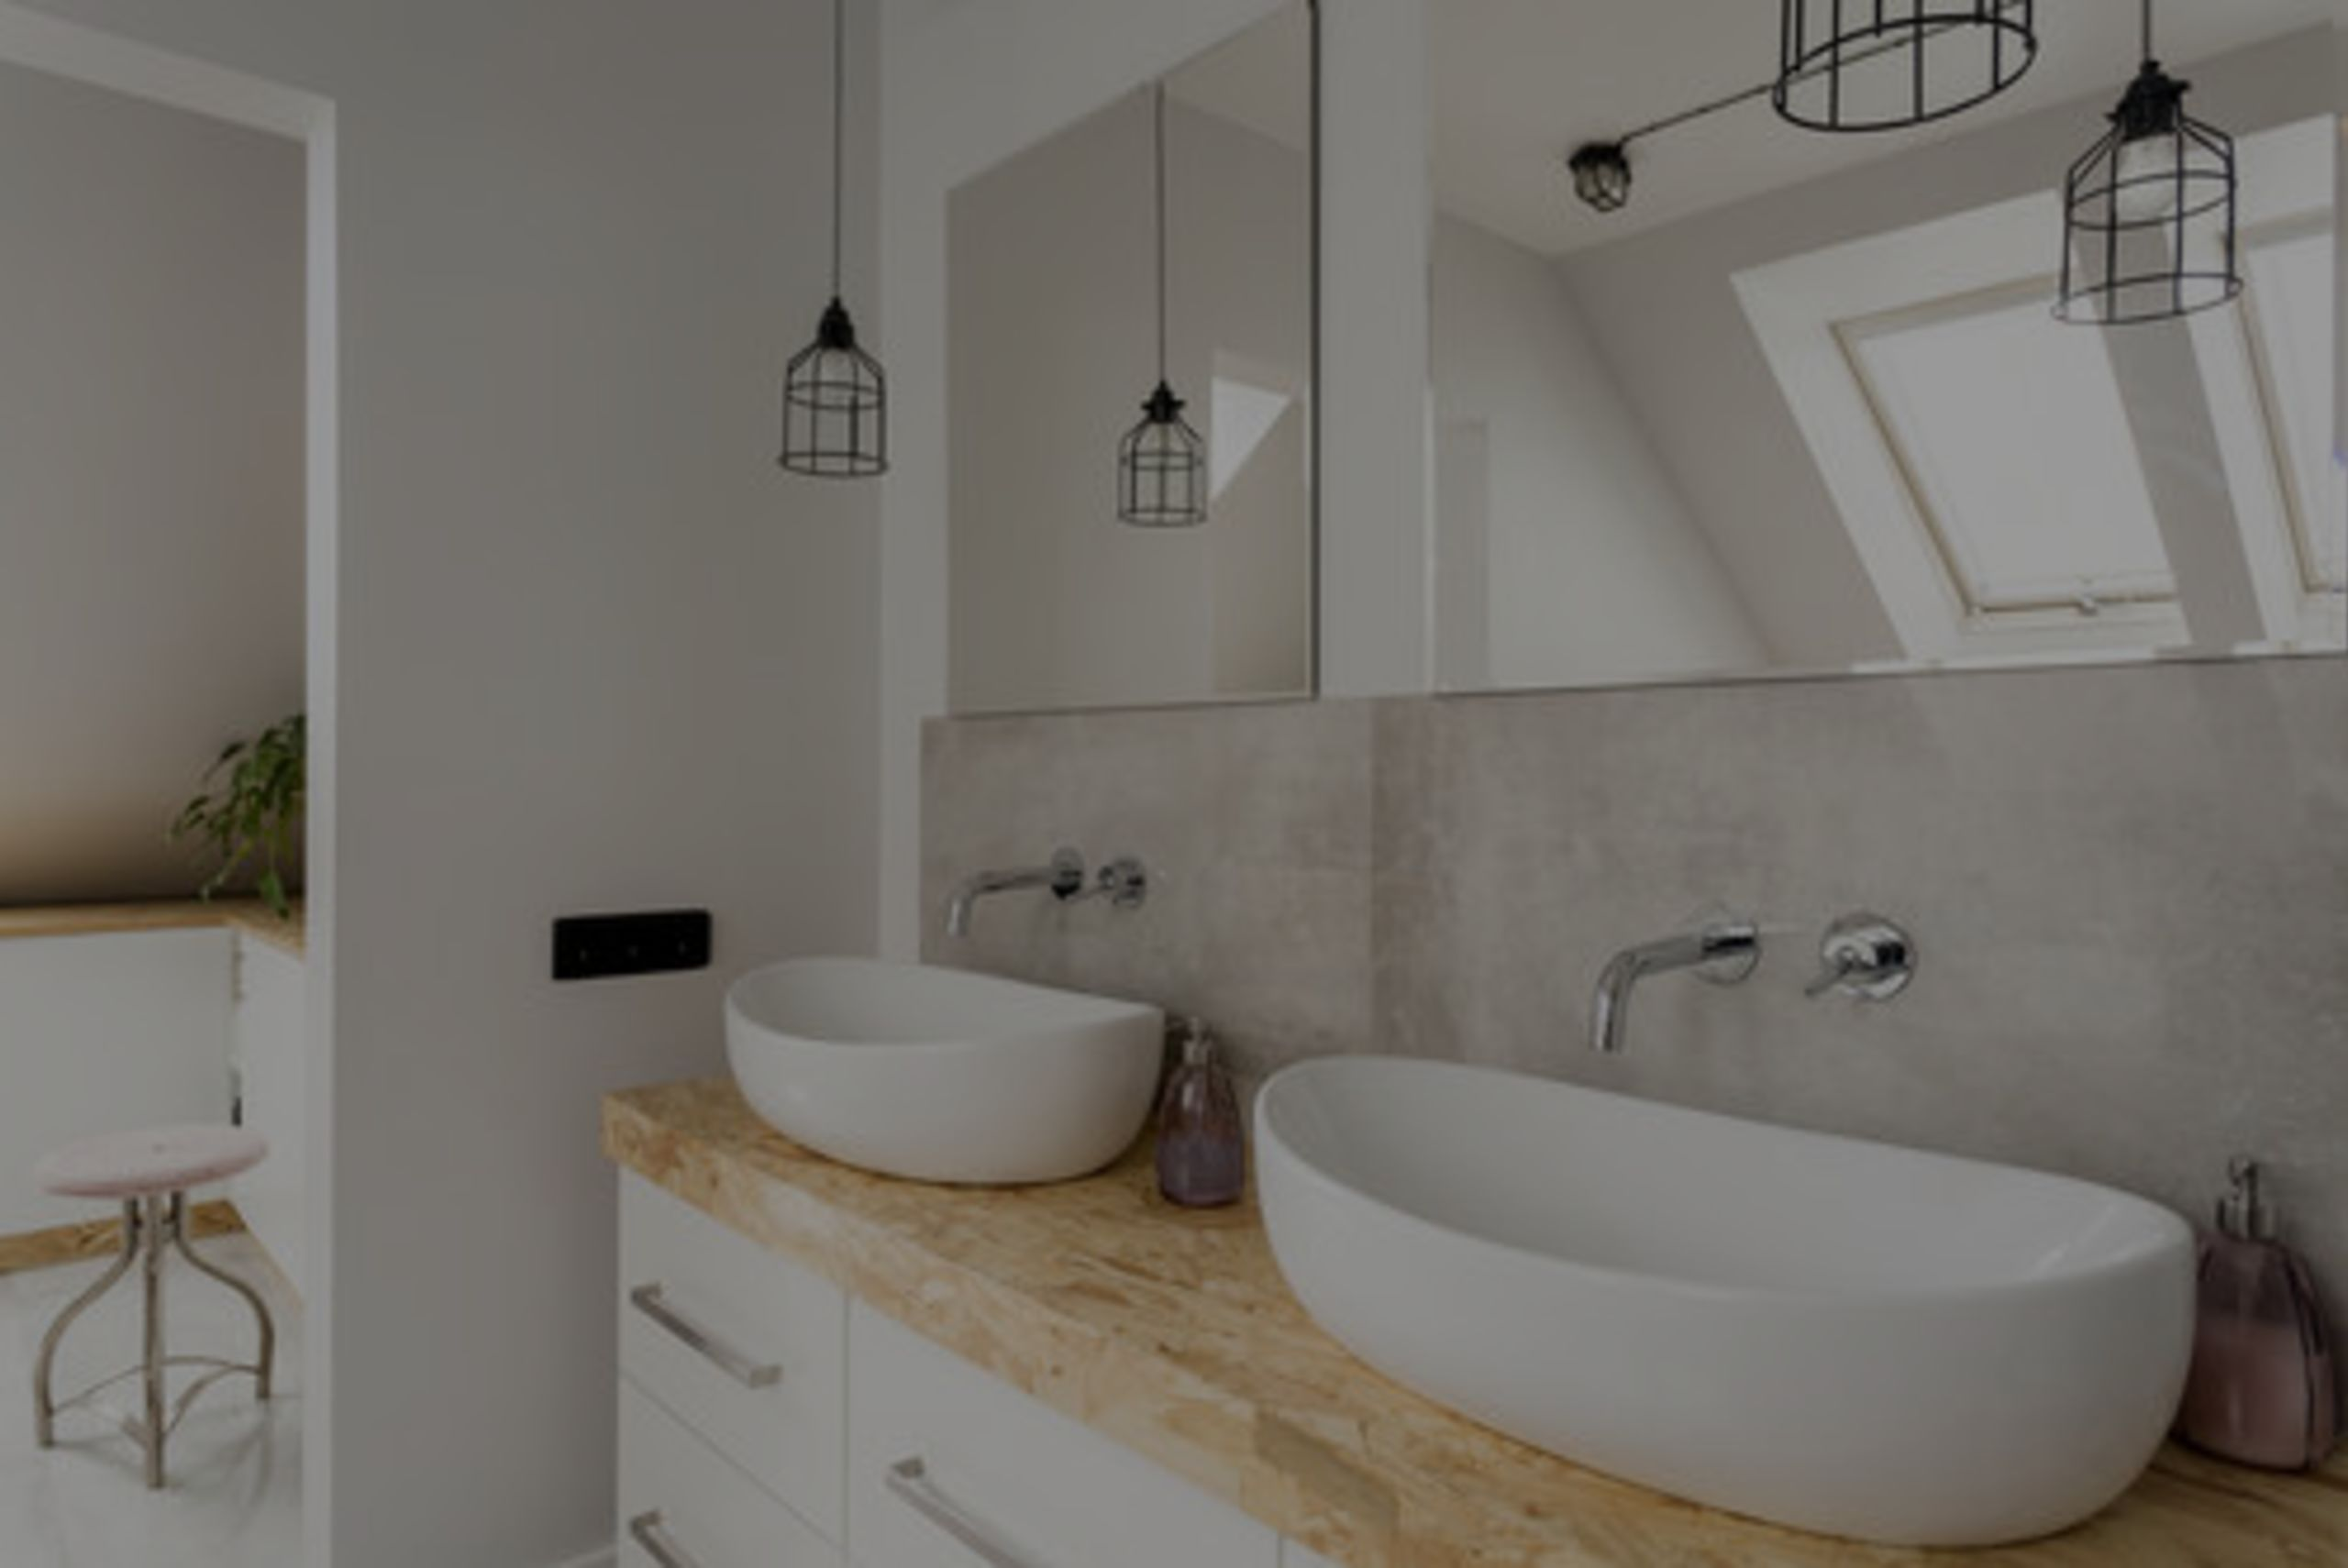 How to Fix 5 Common Bathroom Issues